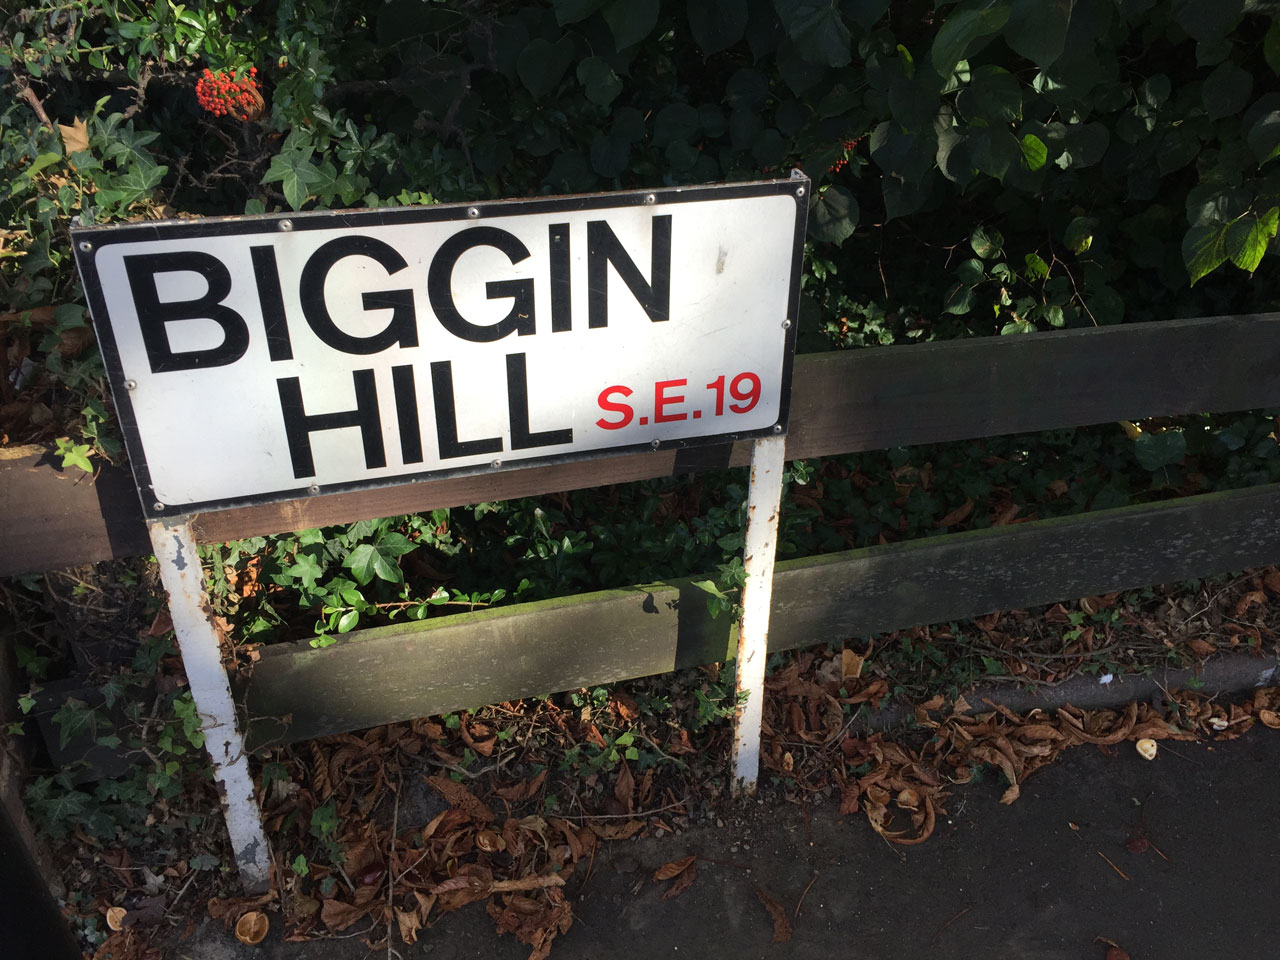 Biggin Hill, London